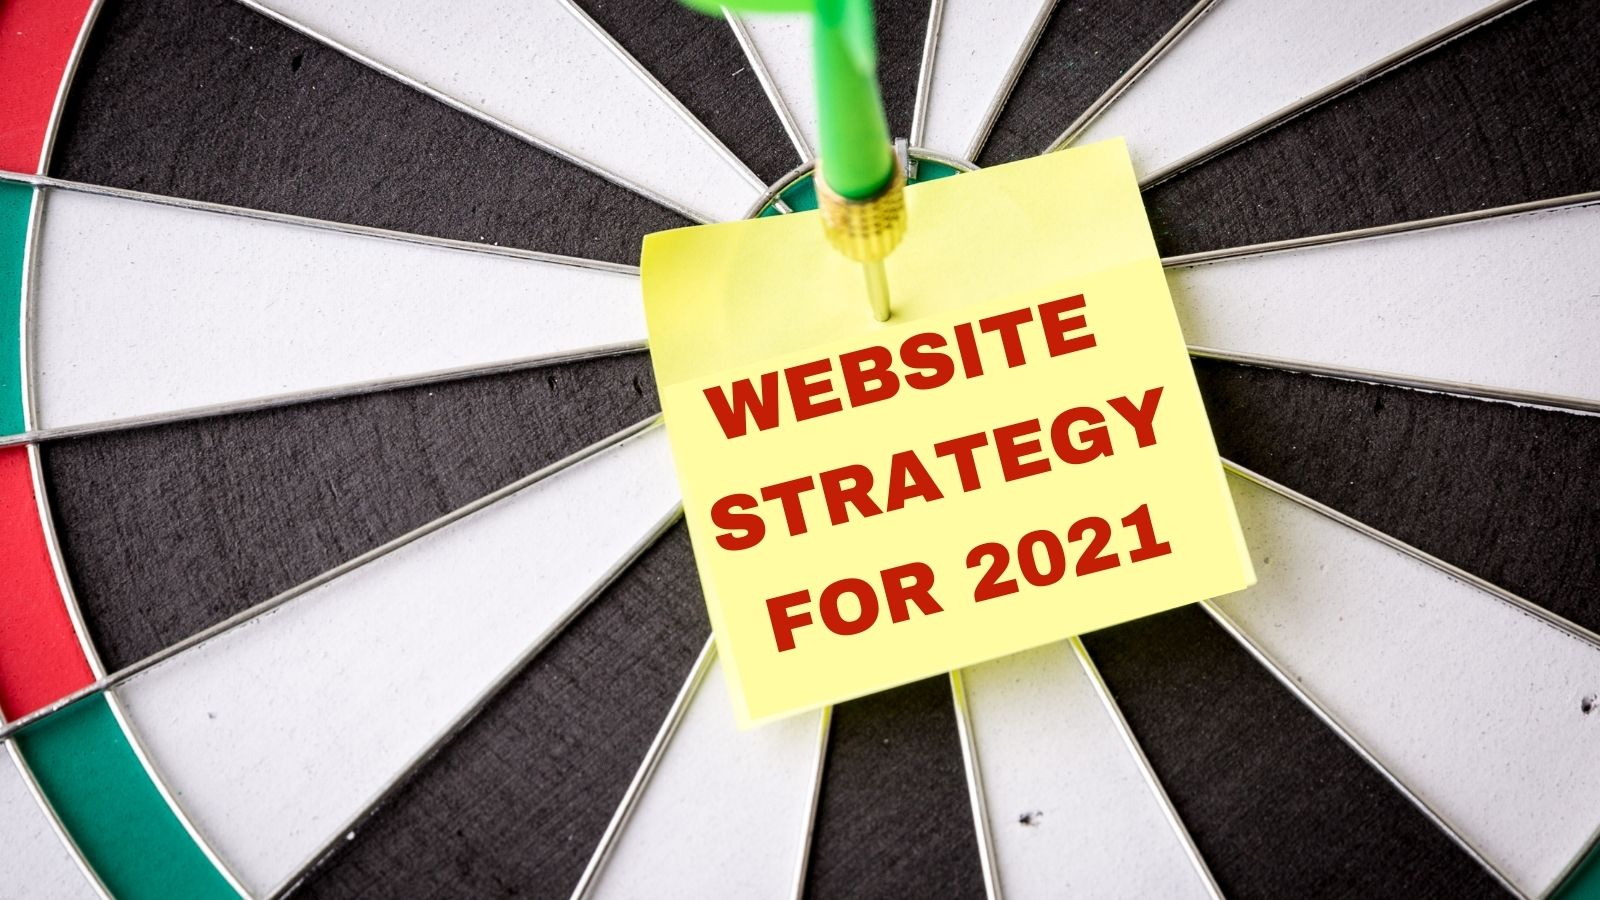 Website strategy takes on new meaning in 2021